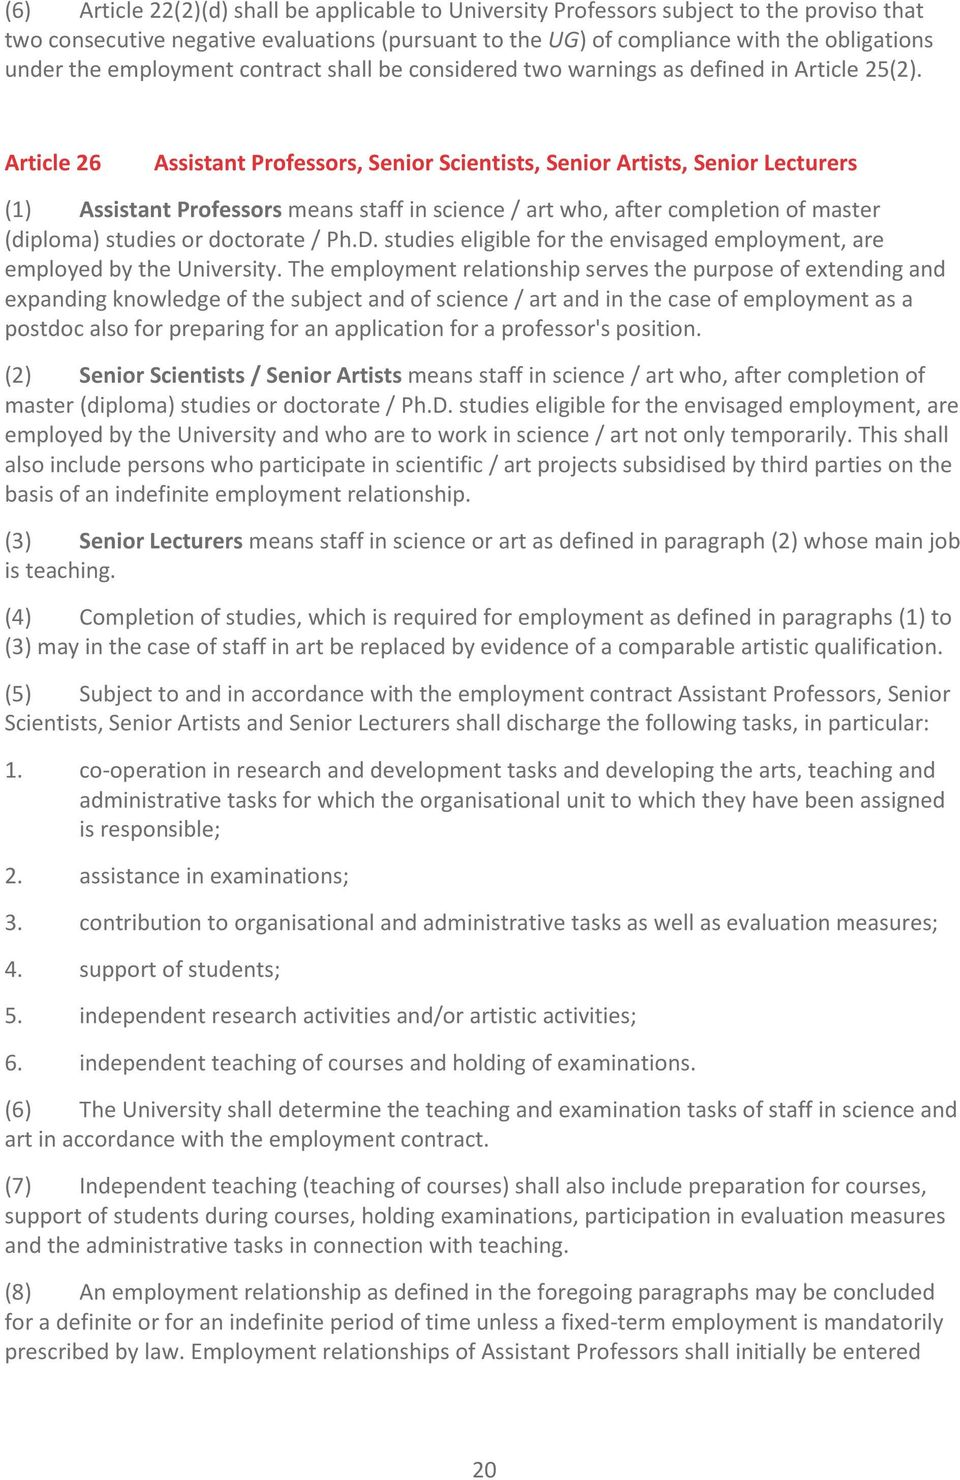 Article 26 Assistant Professors, Senior Scientists, Senior Artists, Senior Lecturers (1) Assistant Professors means staff in science / art who, after completion of master (diploma) studies or